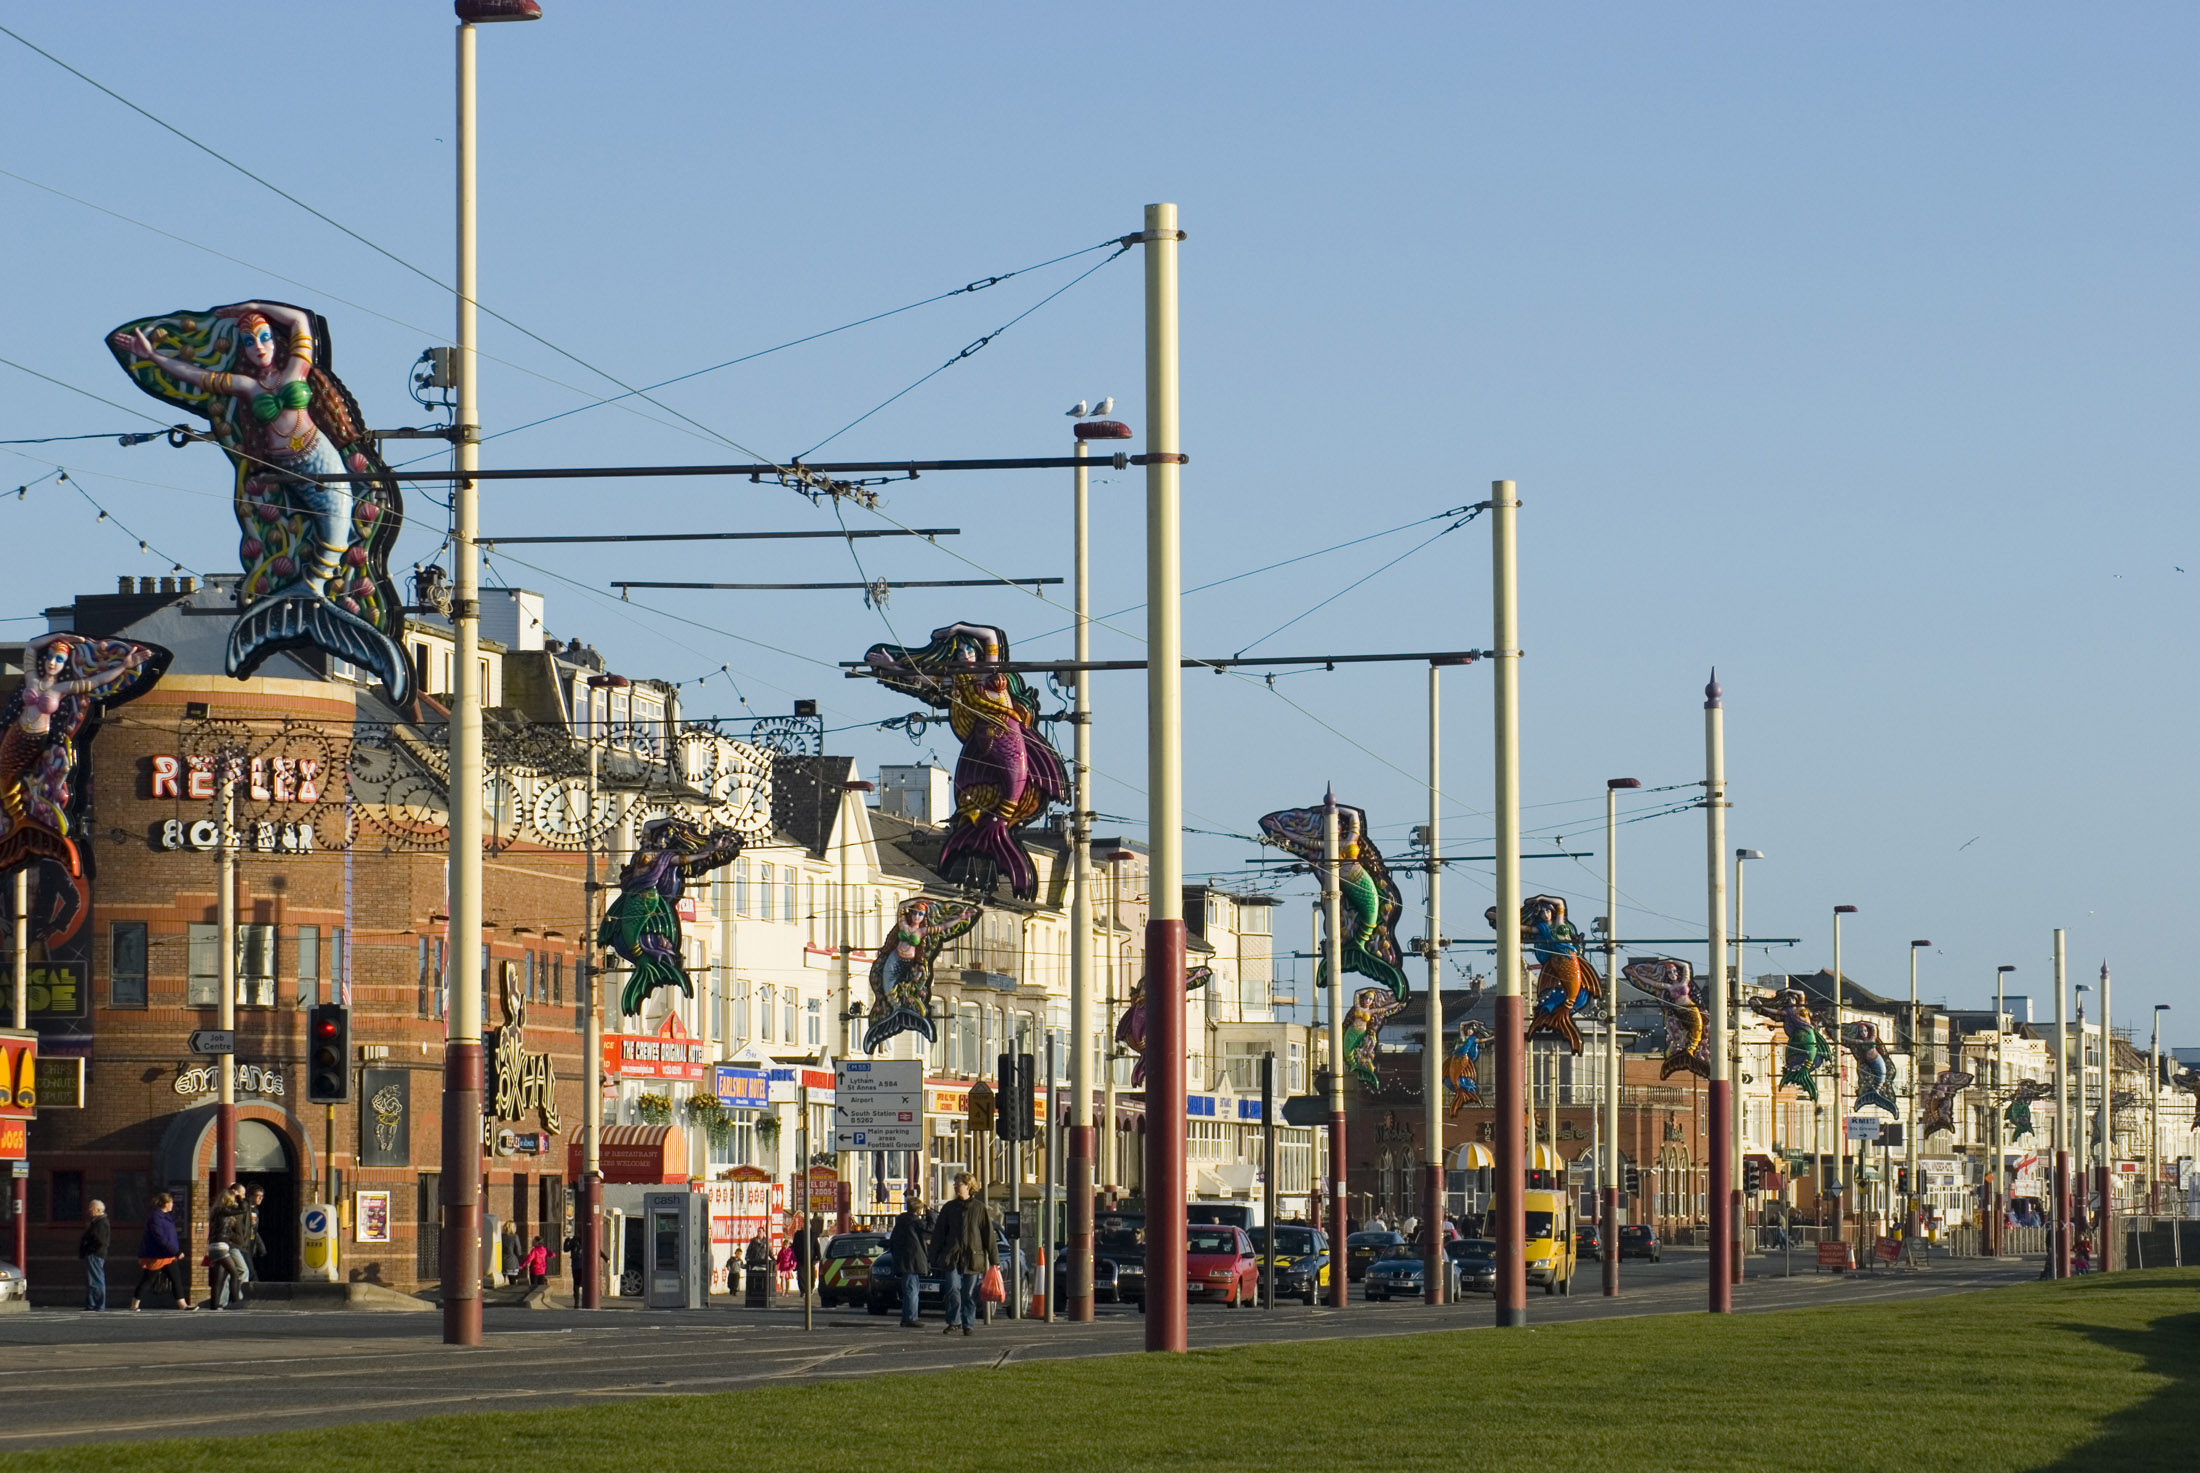 streetlights on blackpool promendade all set up for the annual illuminations